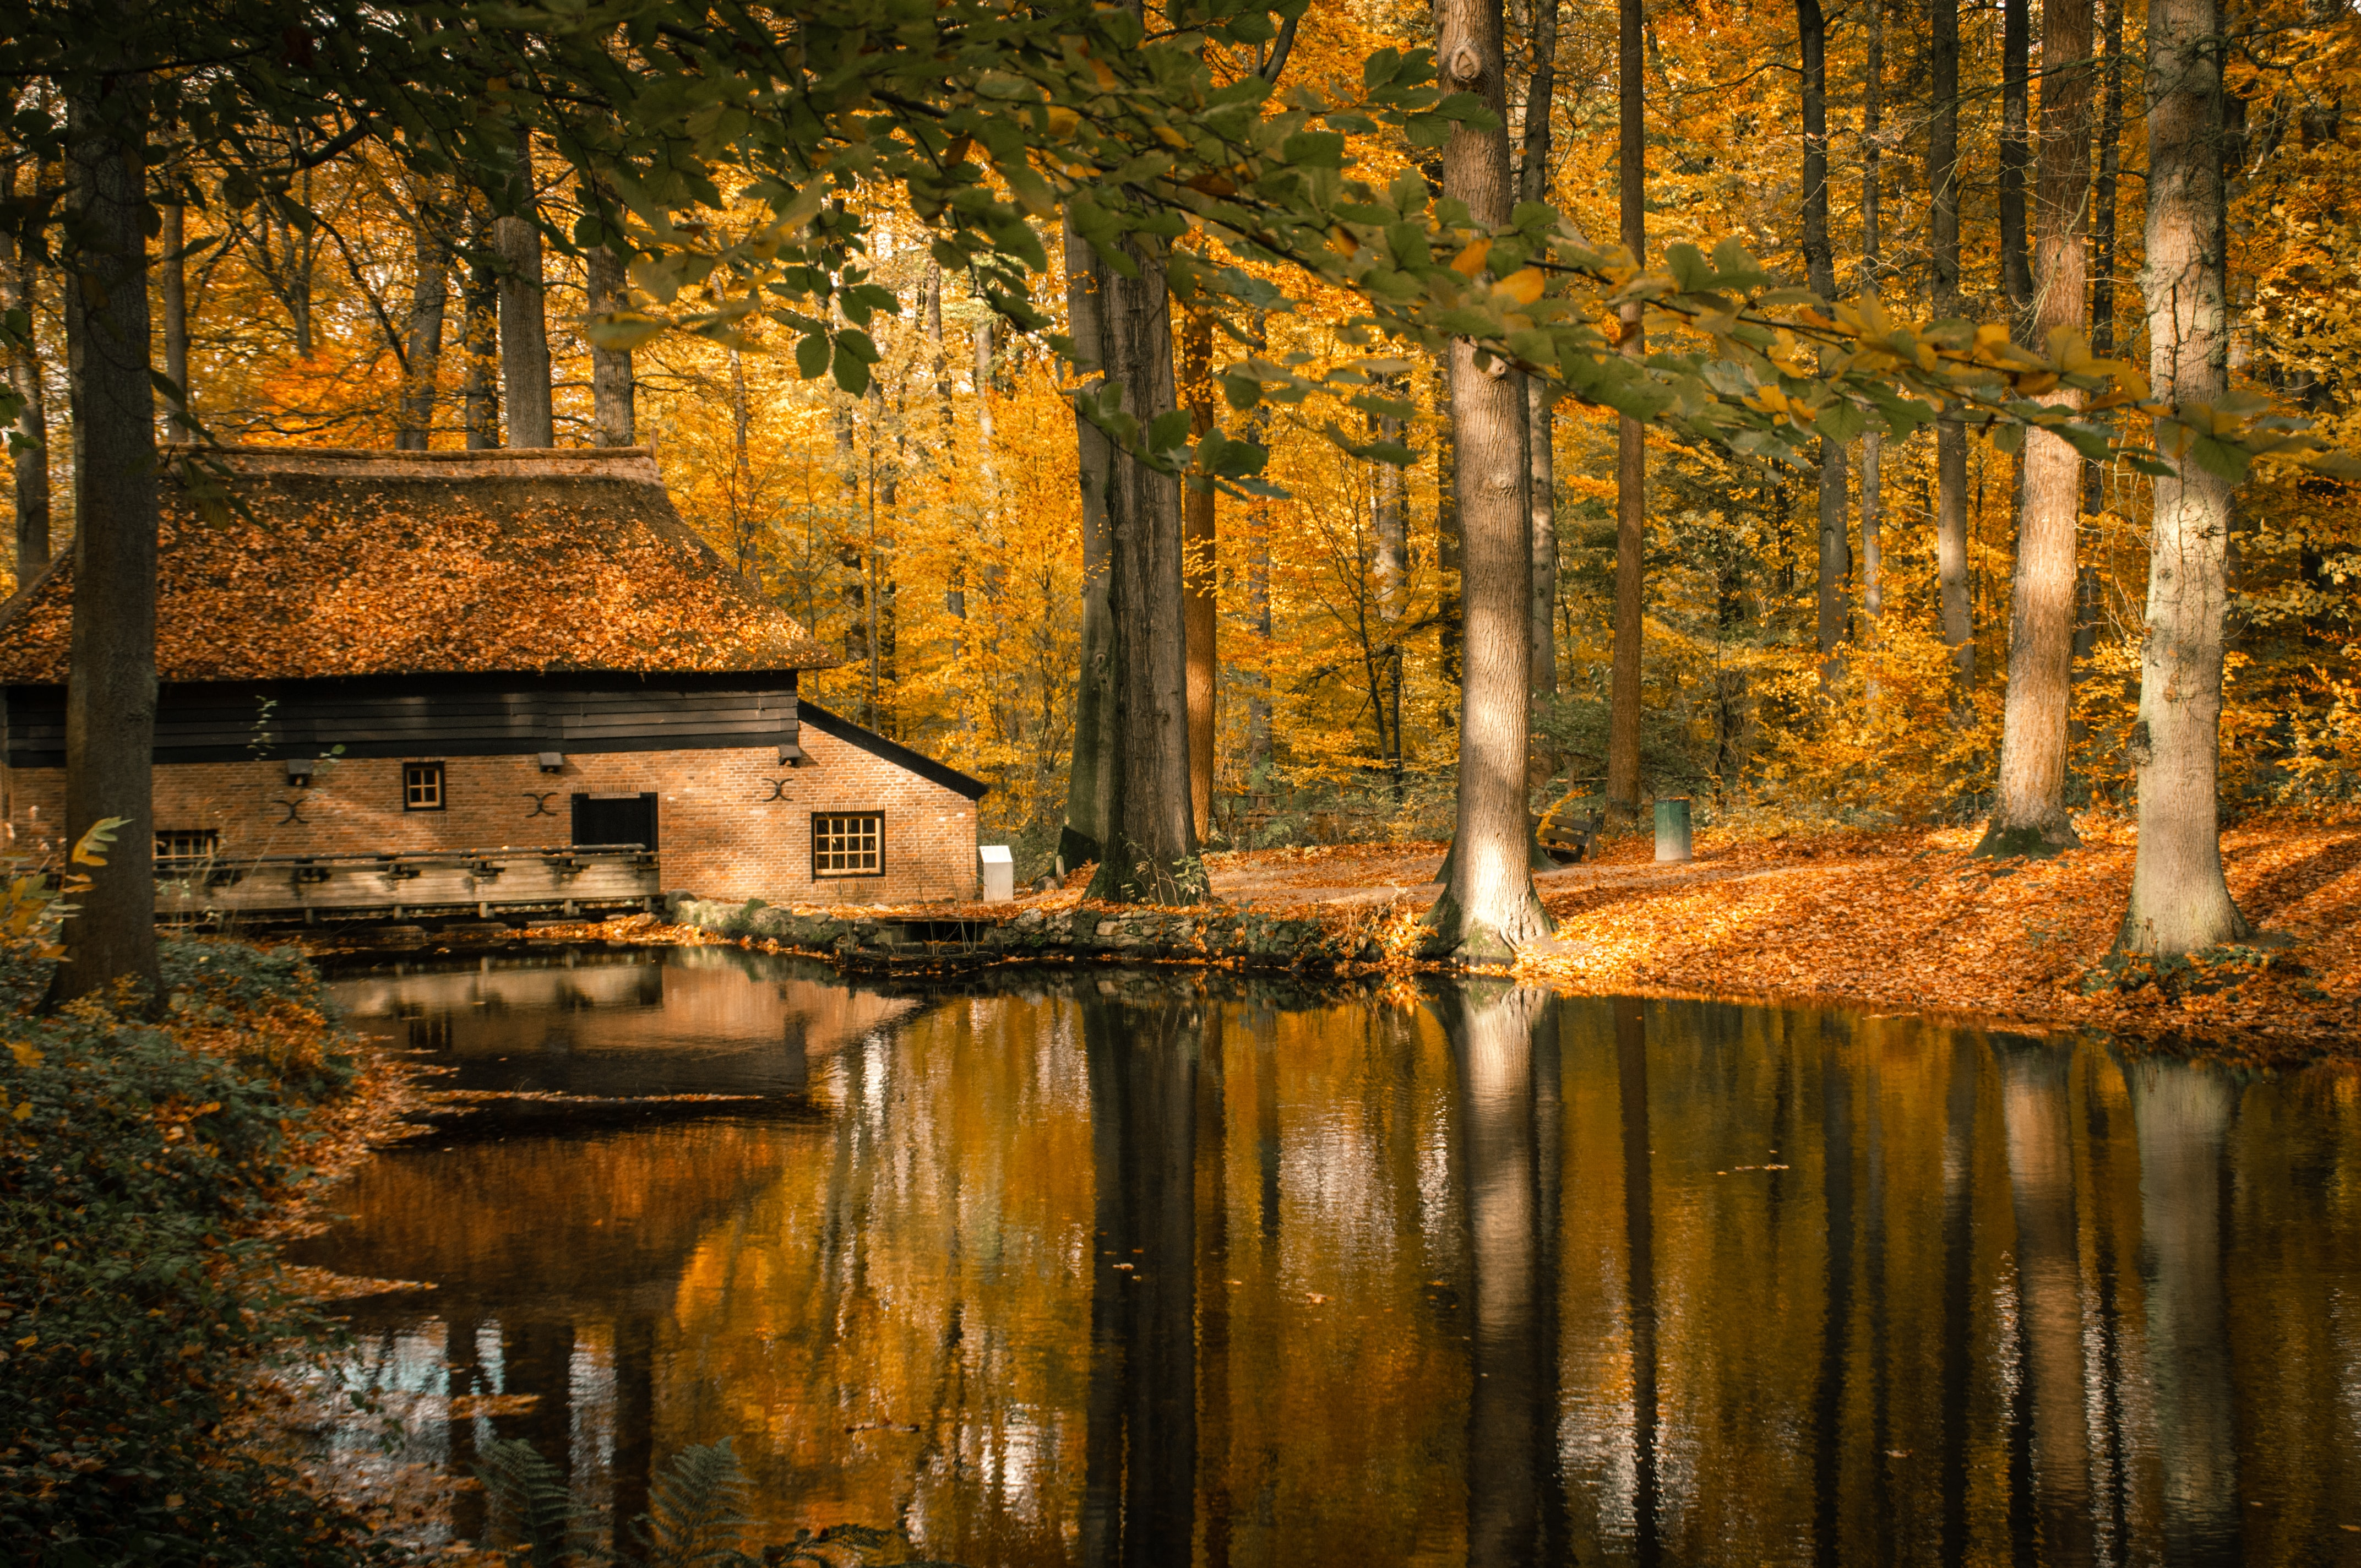 brown house beside calm body of water